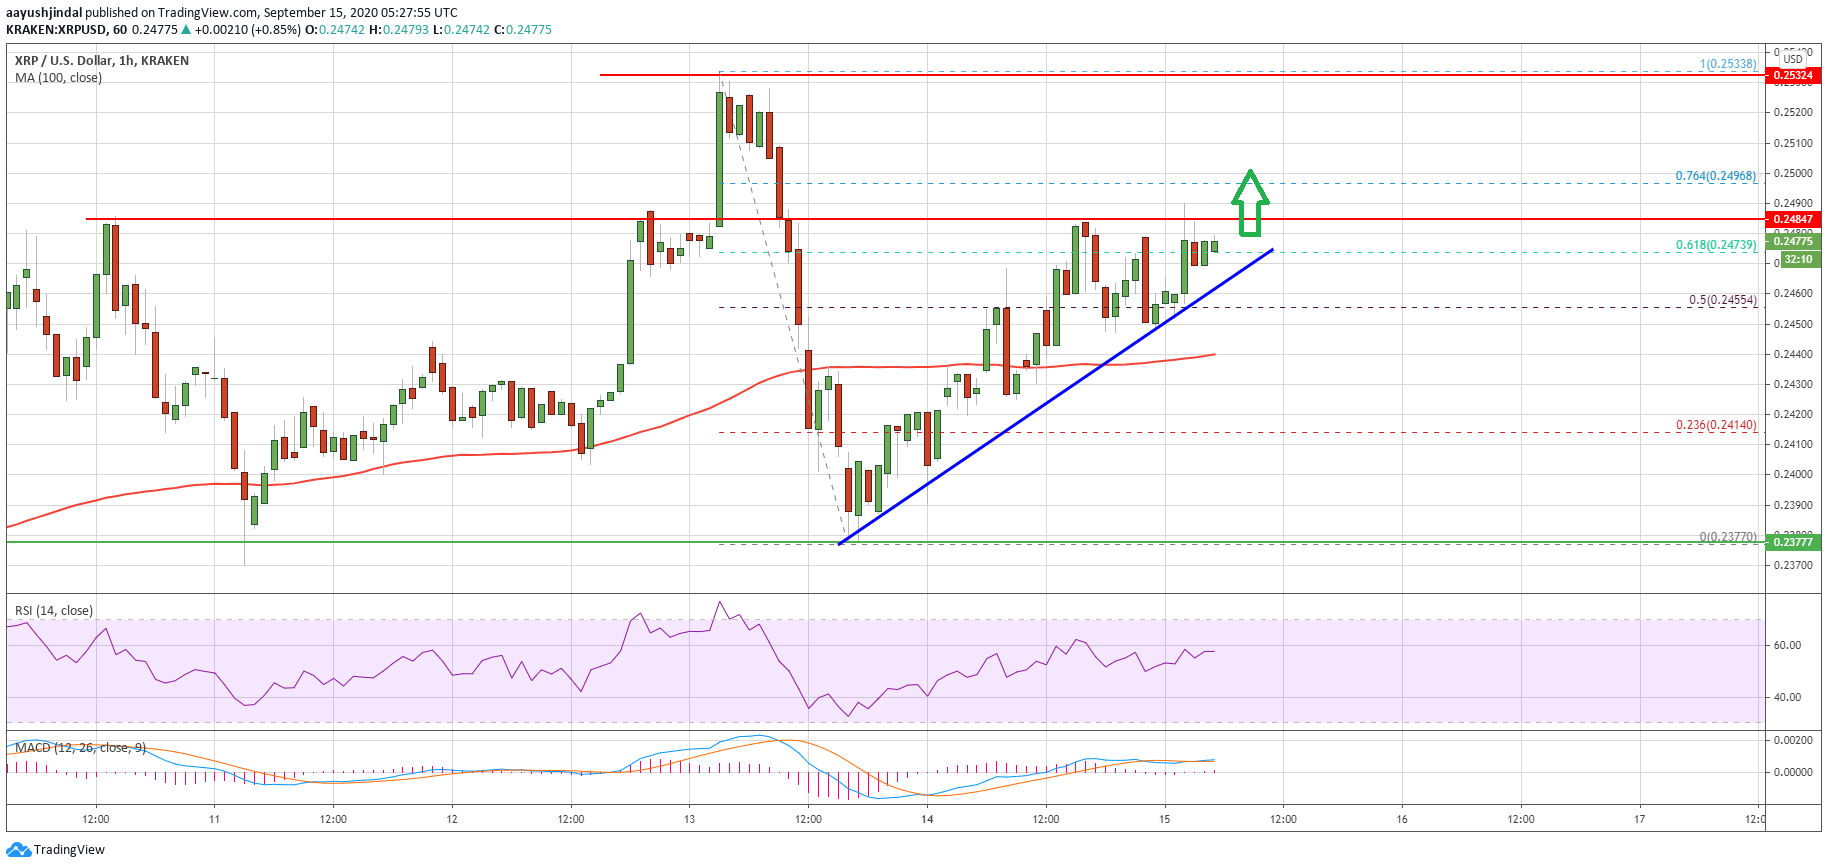 Key Reasons Why Ripple (XRP) Price Could Surge Past $0.25